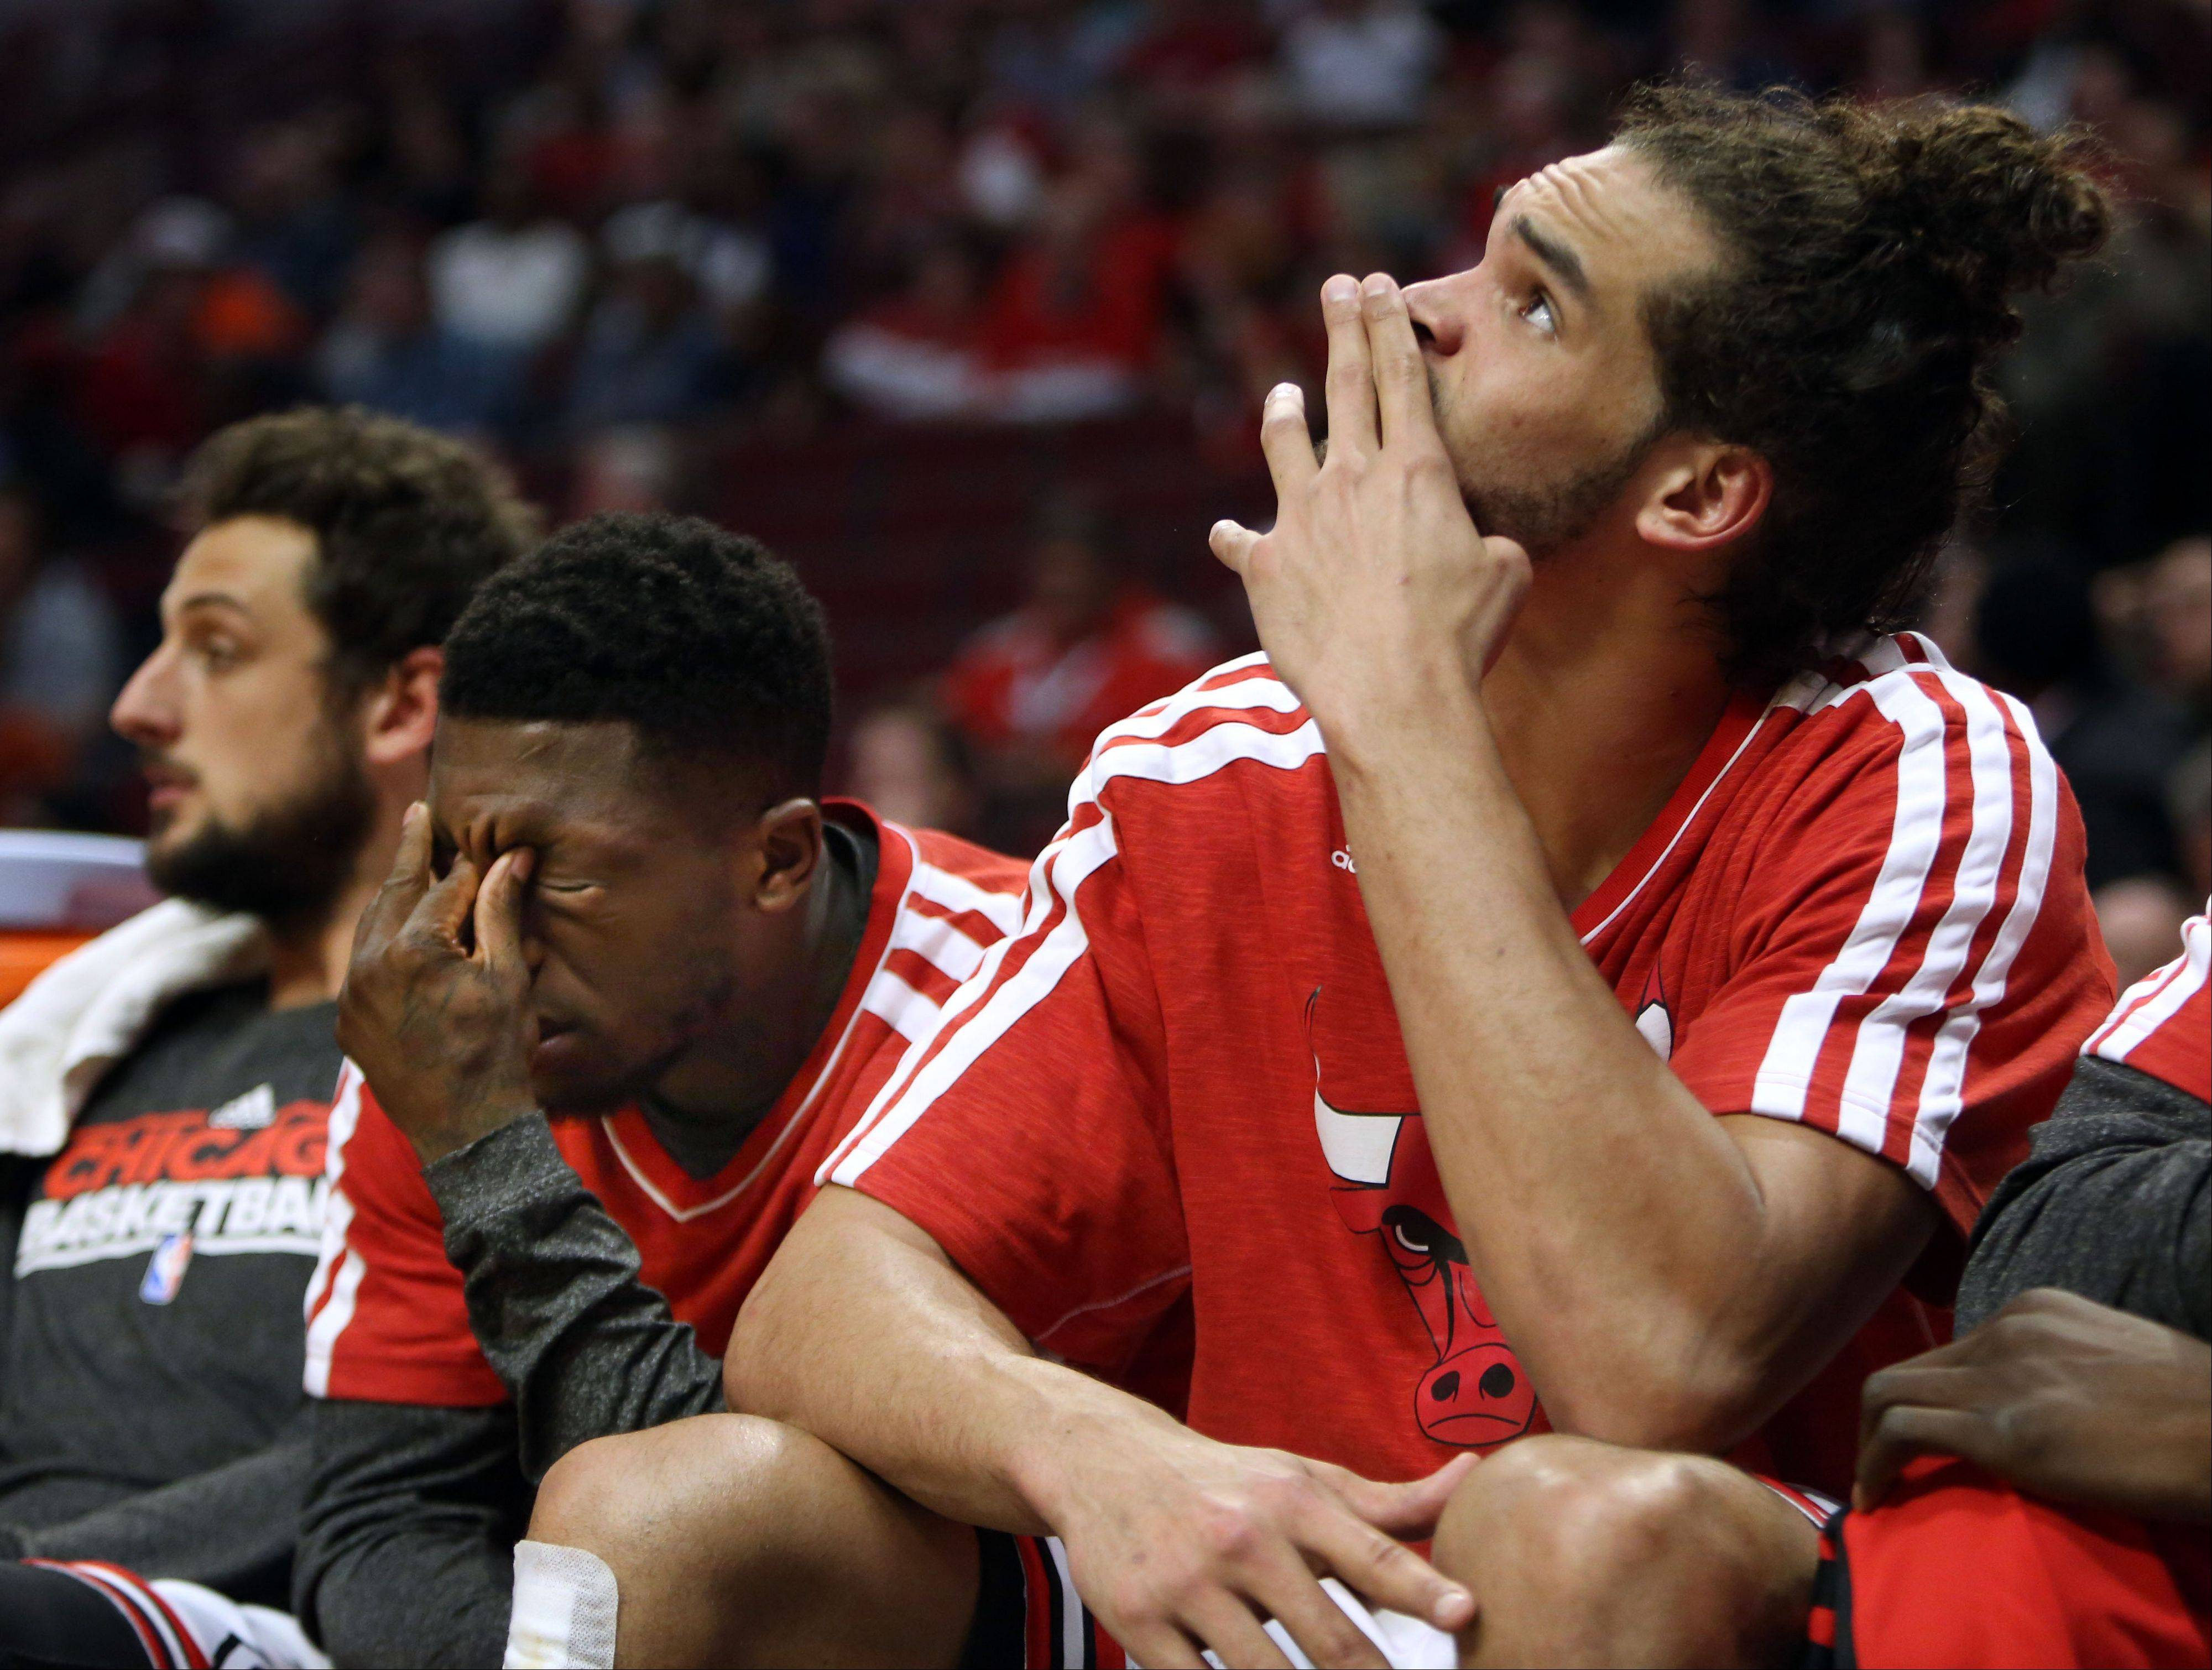 Chicago Bulls point guard Nate Robinson and Chicago Bulls center Joakim Noah sit dejected on the bench.